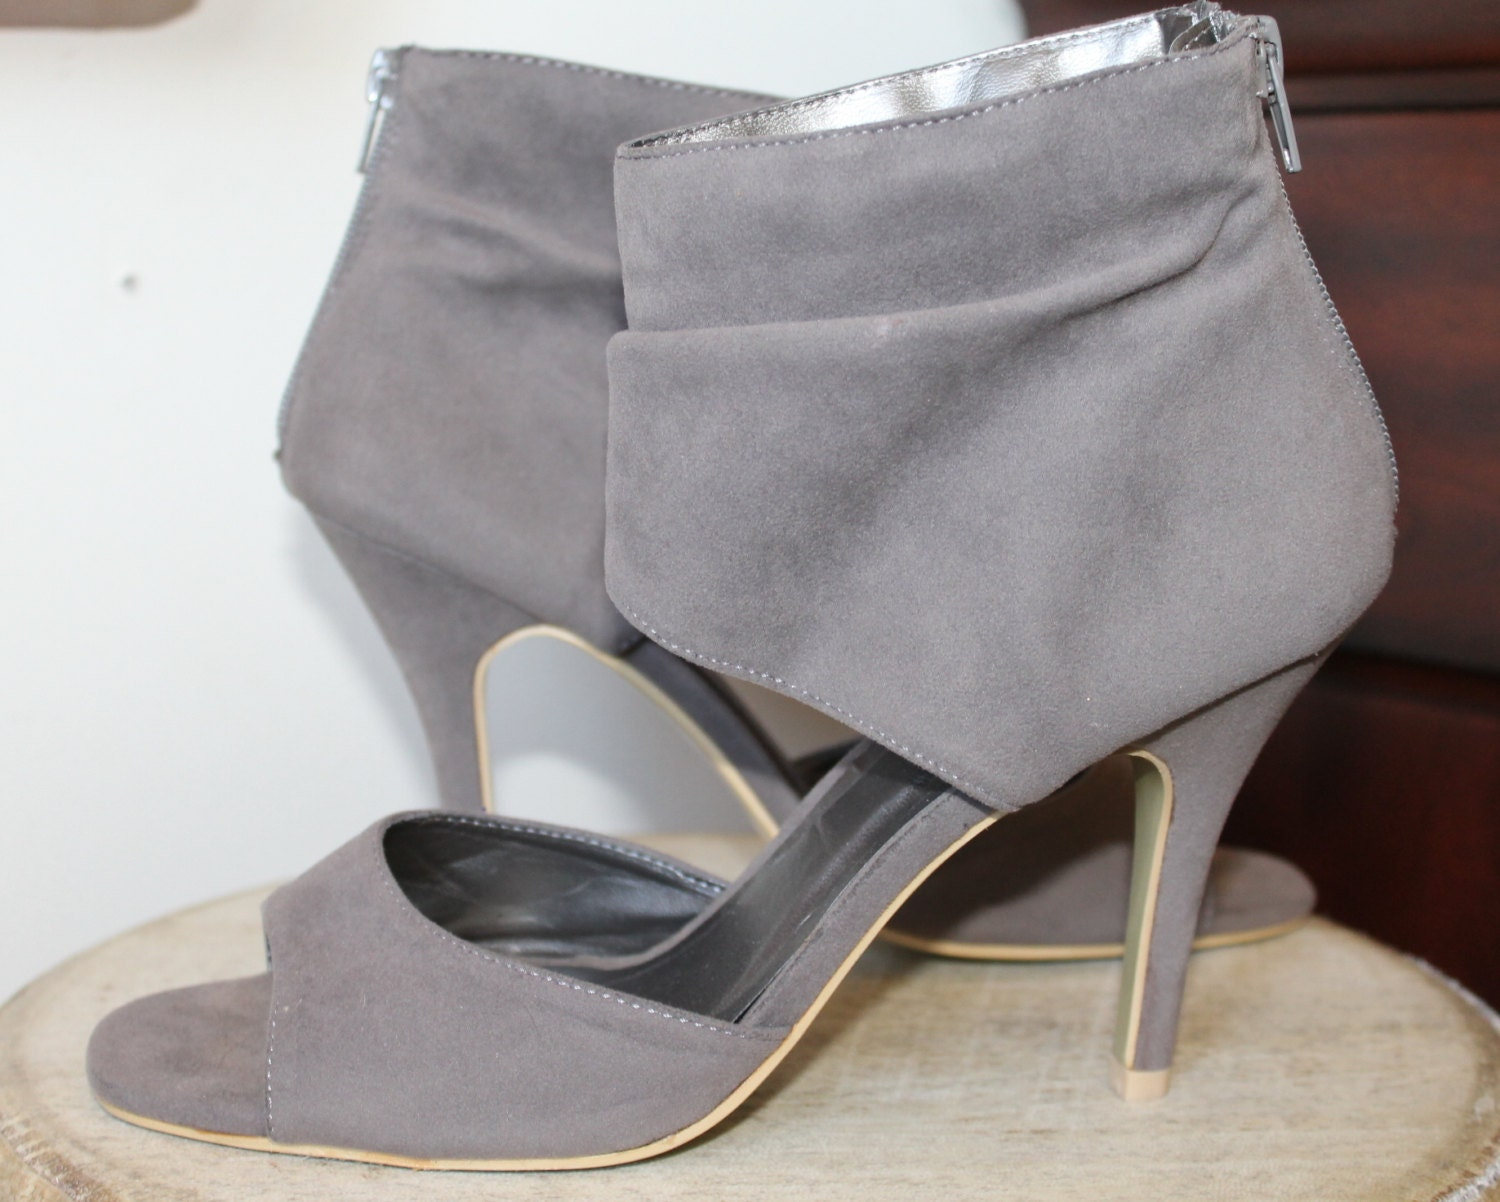 8f748dfa28398 SHADES OF GREY Sandals Booties Slouchy Ankle Corporate Sexy Office Faux  Suede Peep Toe High Heels. gallery photo gallery photo gallery photo ...